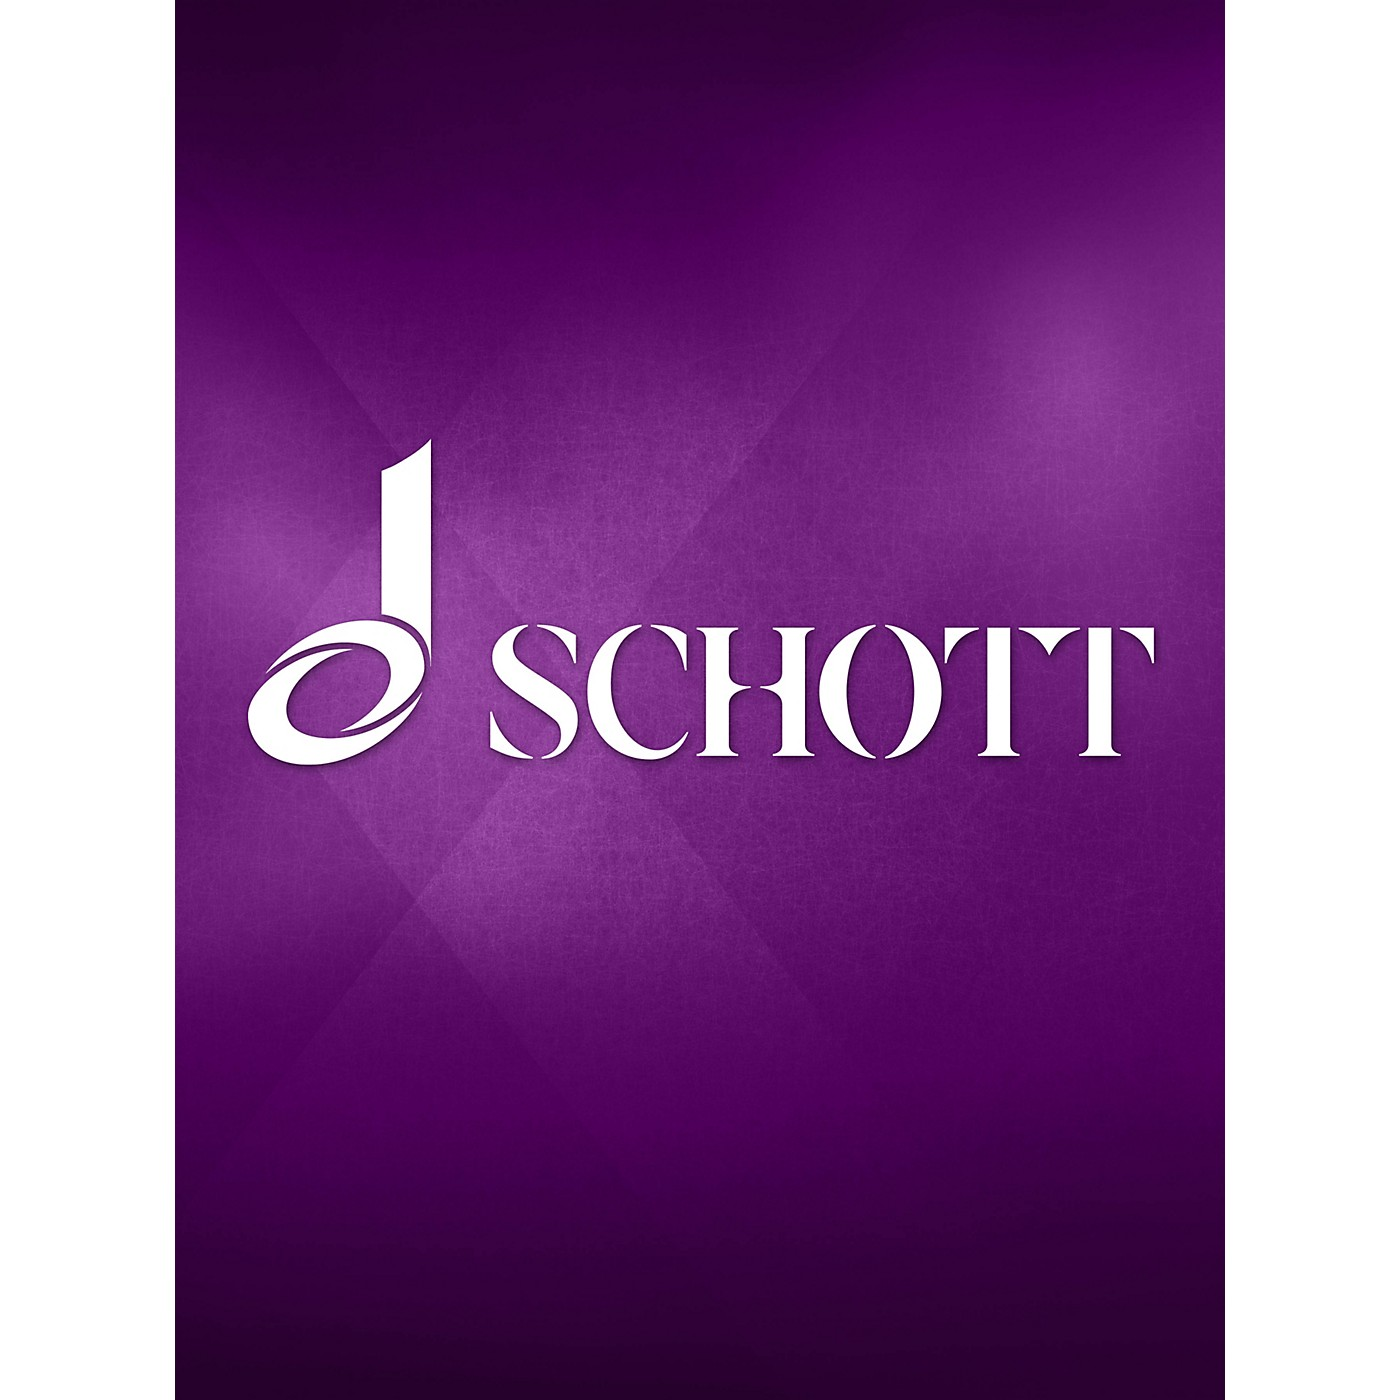 Schott Erfreut euch alle am Chorgesang! SATB Composed by Heinz Wilbert thumbnail